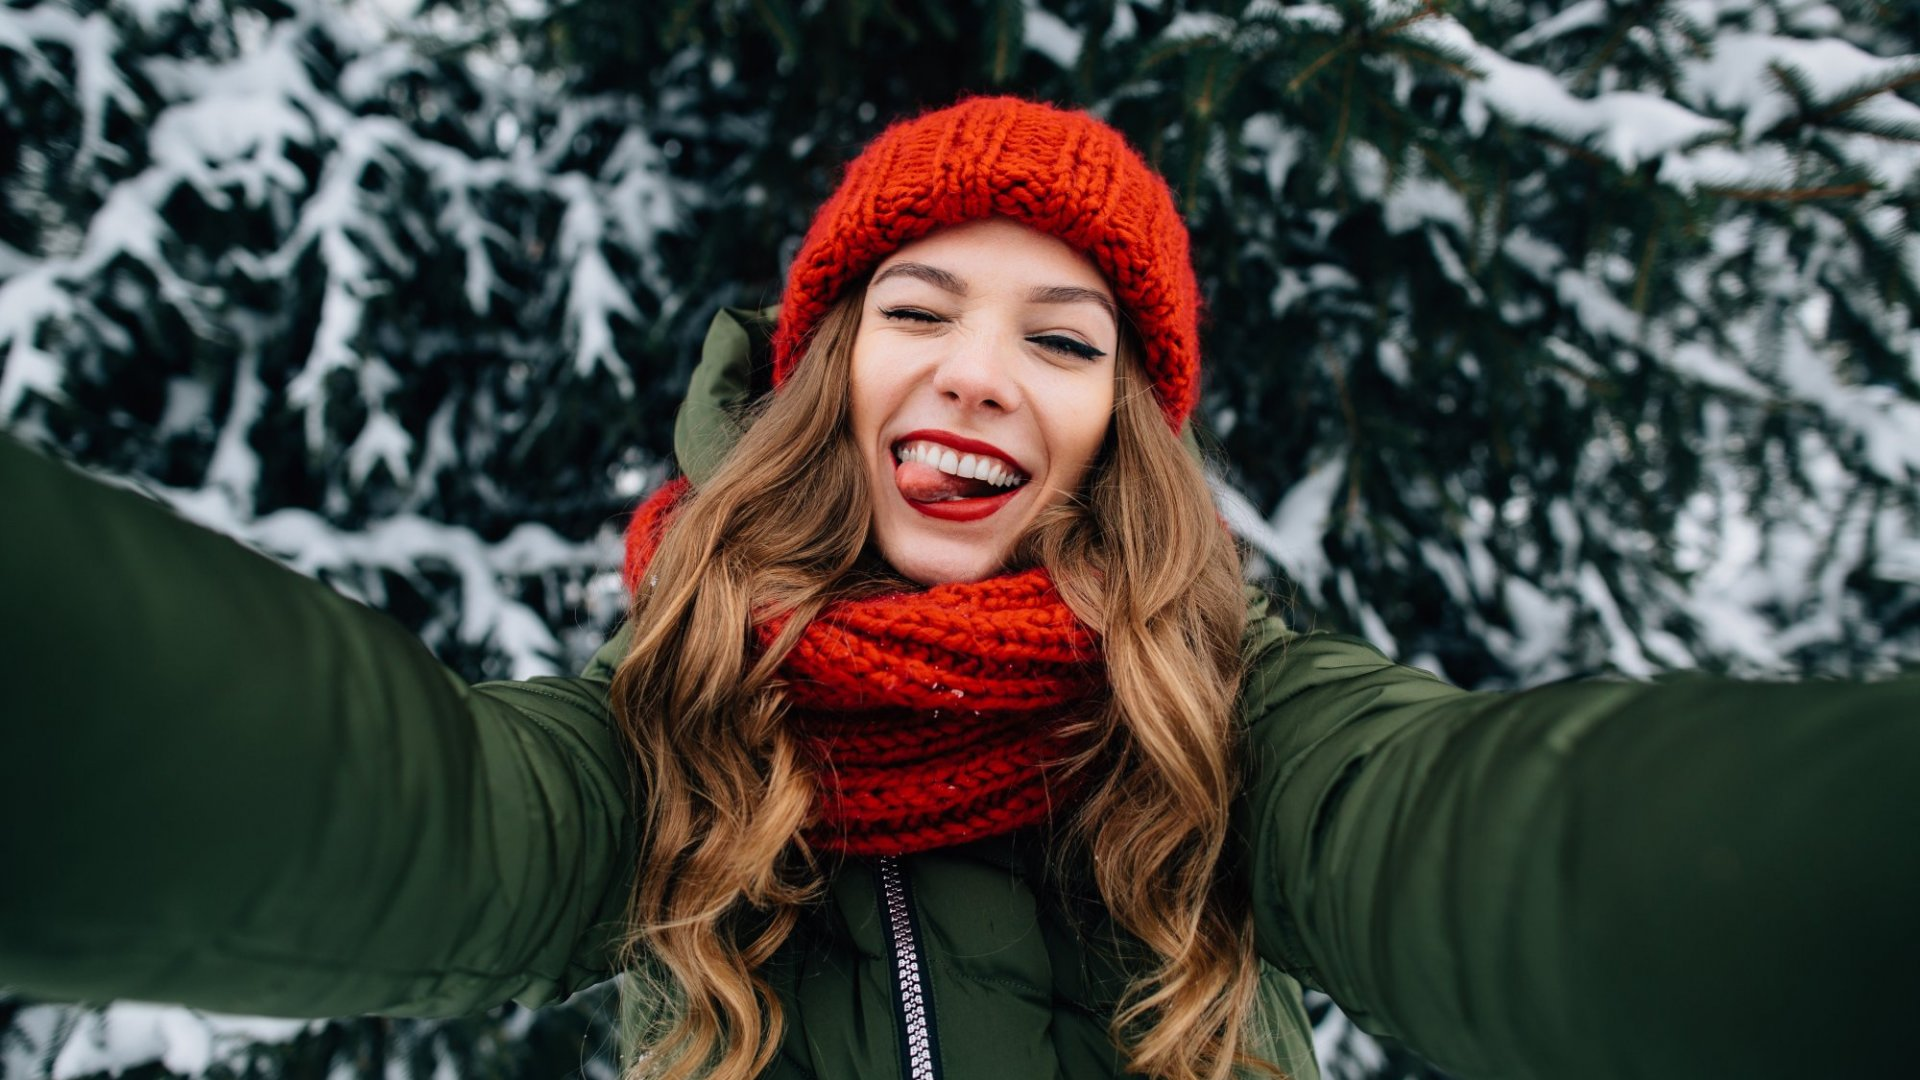 3 Simple (and Free) Ways to Make Your Holiday Season Great